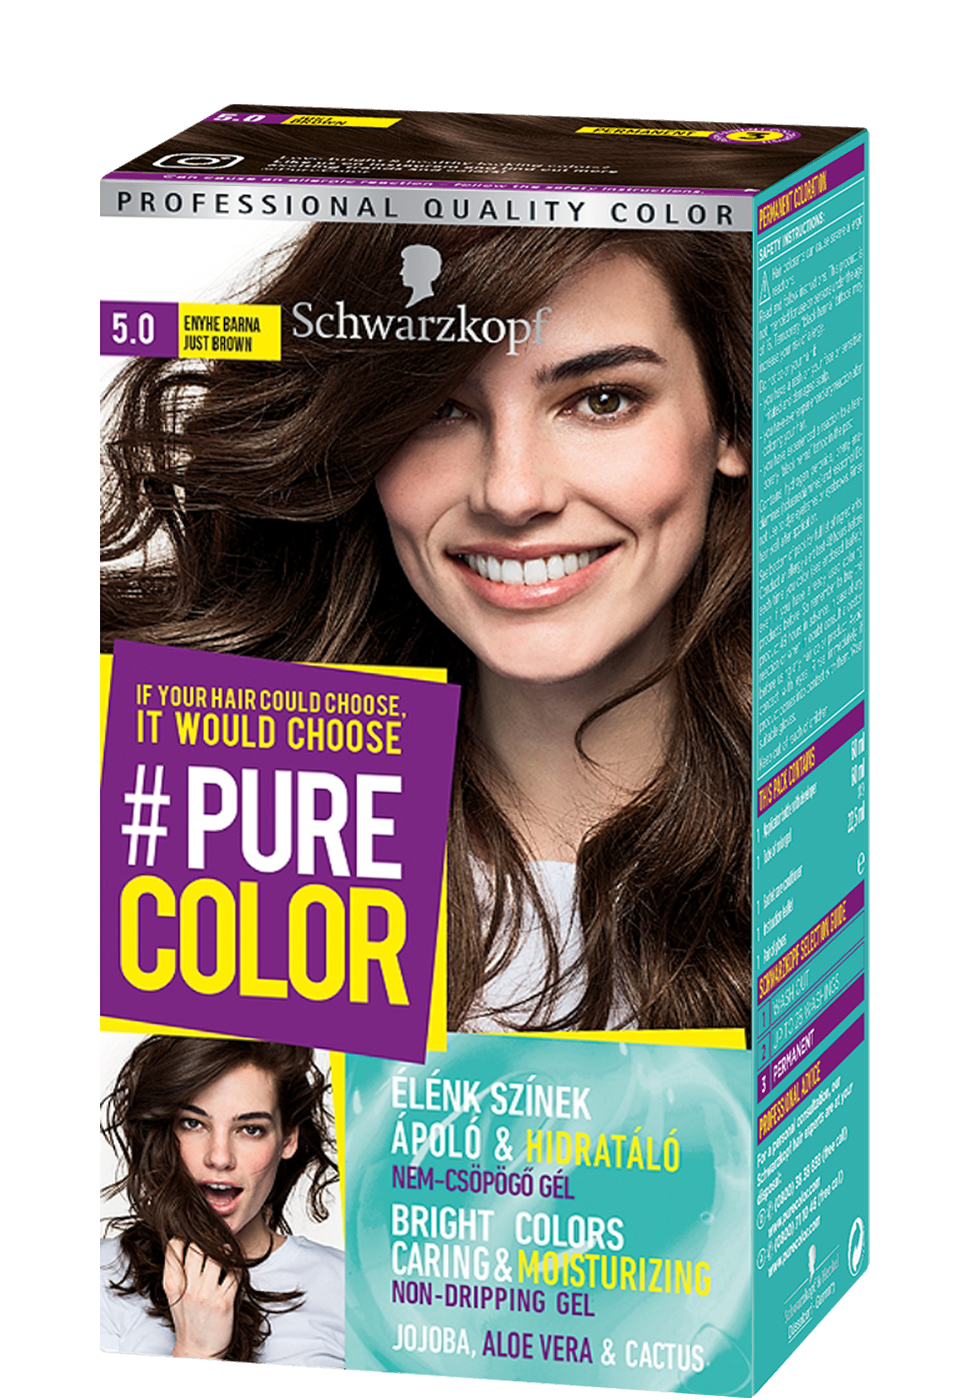 Pure Color - 5.0 Enyhe barna